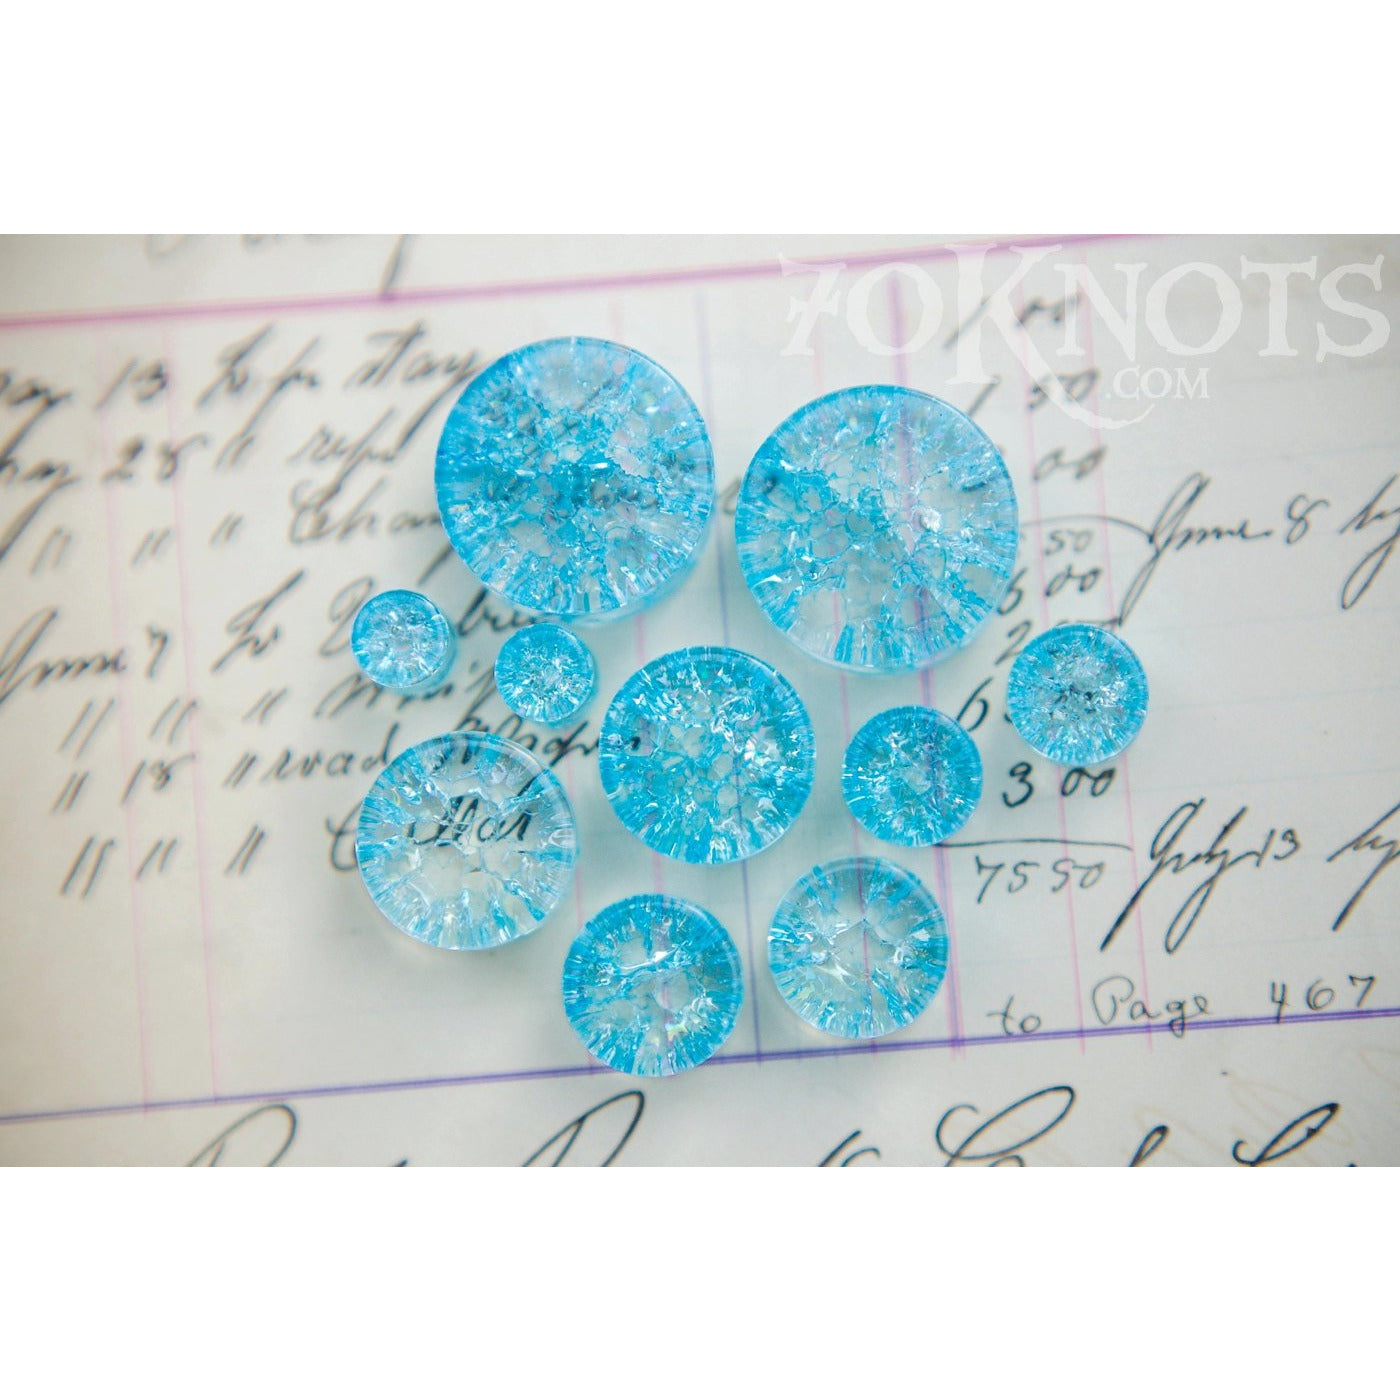 Blue Cracked Glass Double Flared Plugs, Pair - 70 Knots